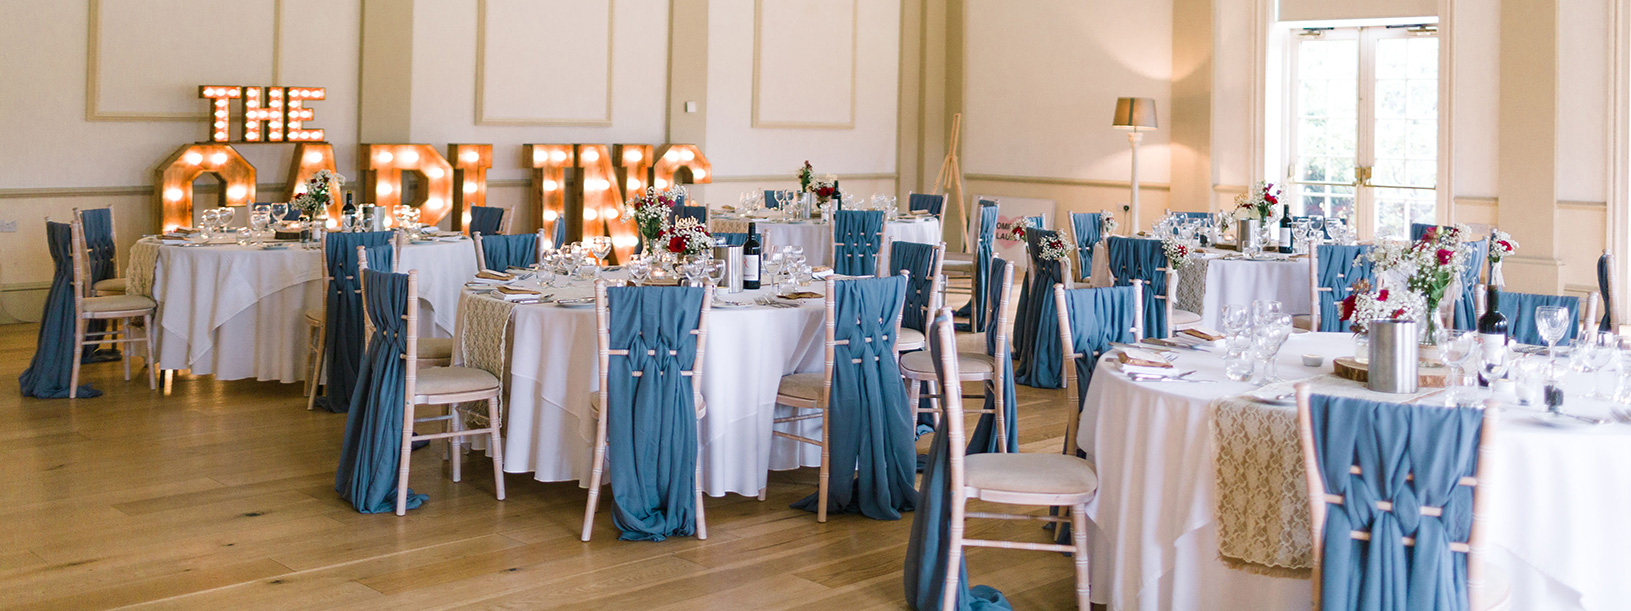 Chair-Styling-Dusky-Blue-Chiffon-Weave Sashes